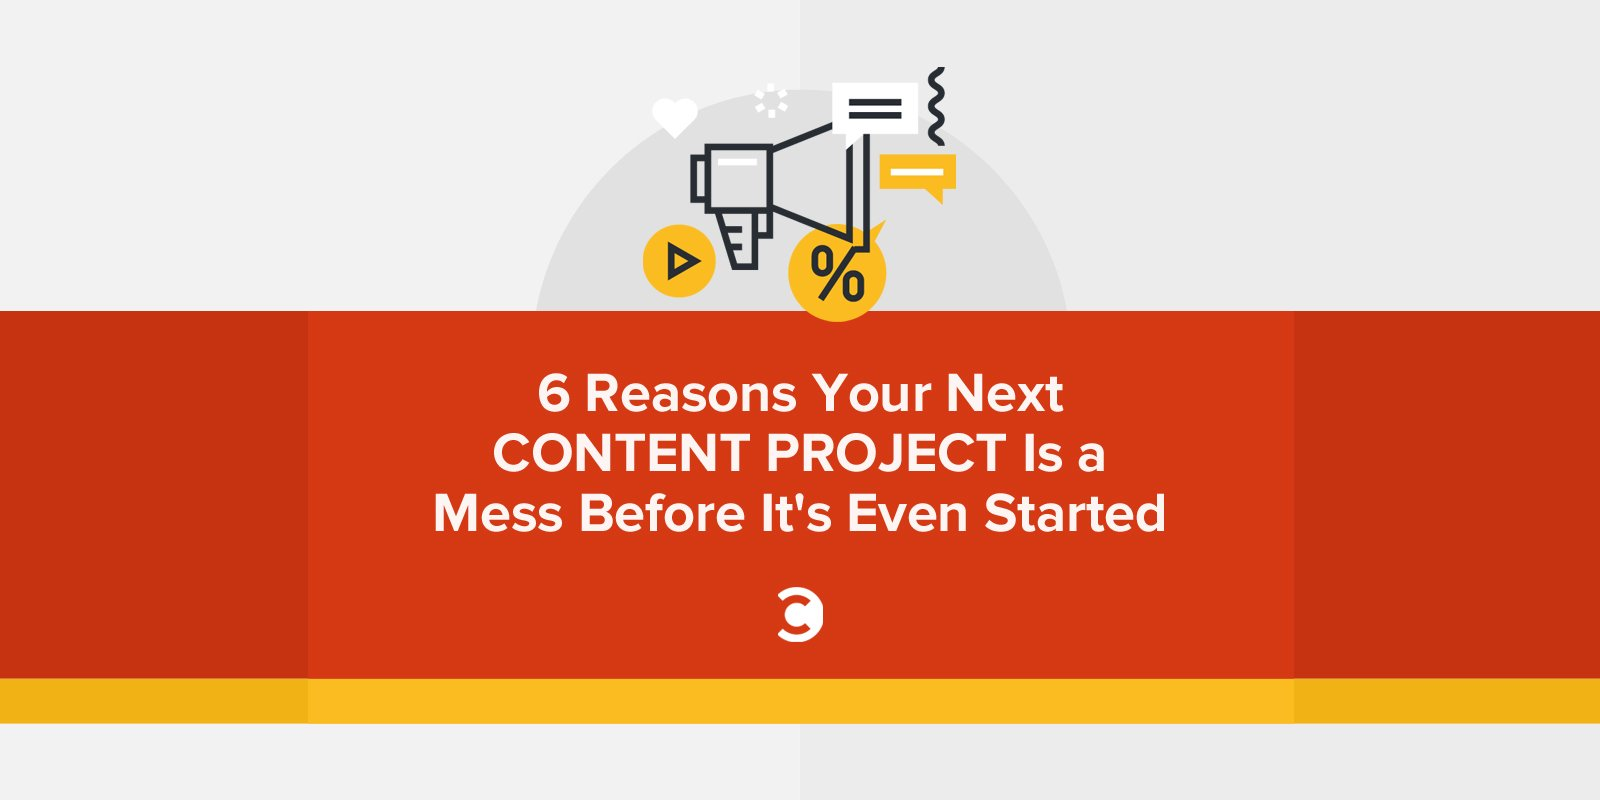 6 Reasons Your Next Content Project Is a Mess Before It's Even Started